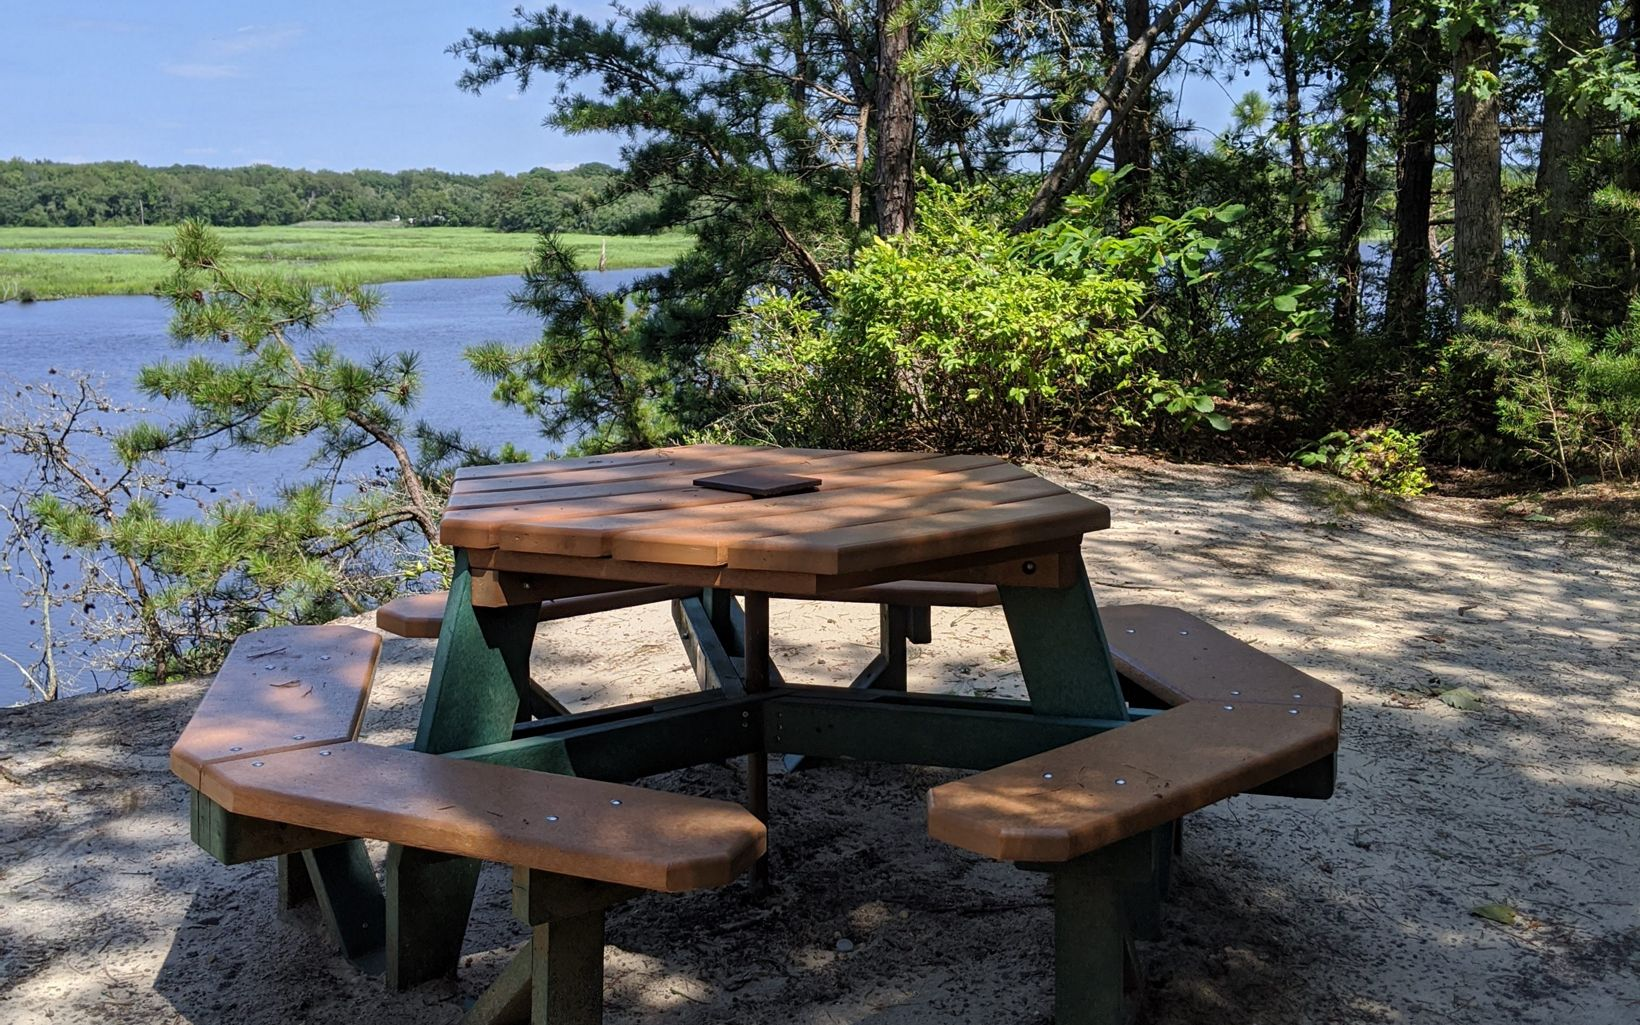 A picnic table sits next to a river and wetlands.